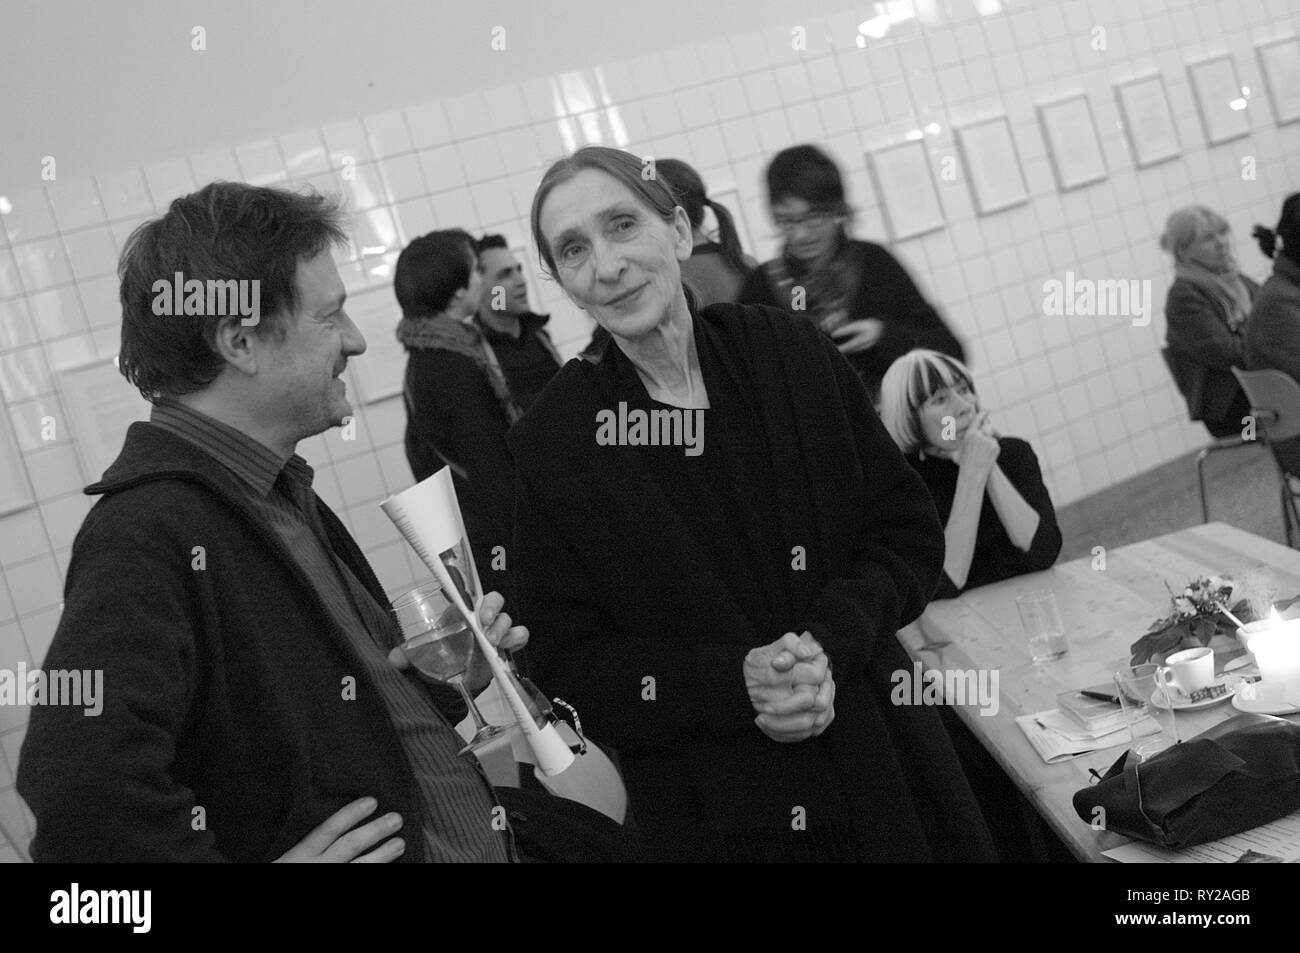 Germany, Essen, 24.11.2008: Pina Bausch in conversation with Thierry de Mey after a dance gala at PACT Zollverein as part of the International, Deutsc - Stock Image